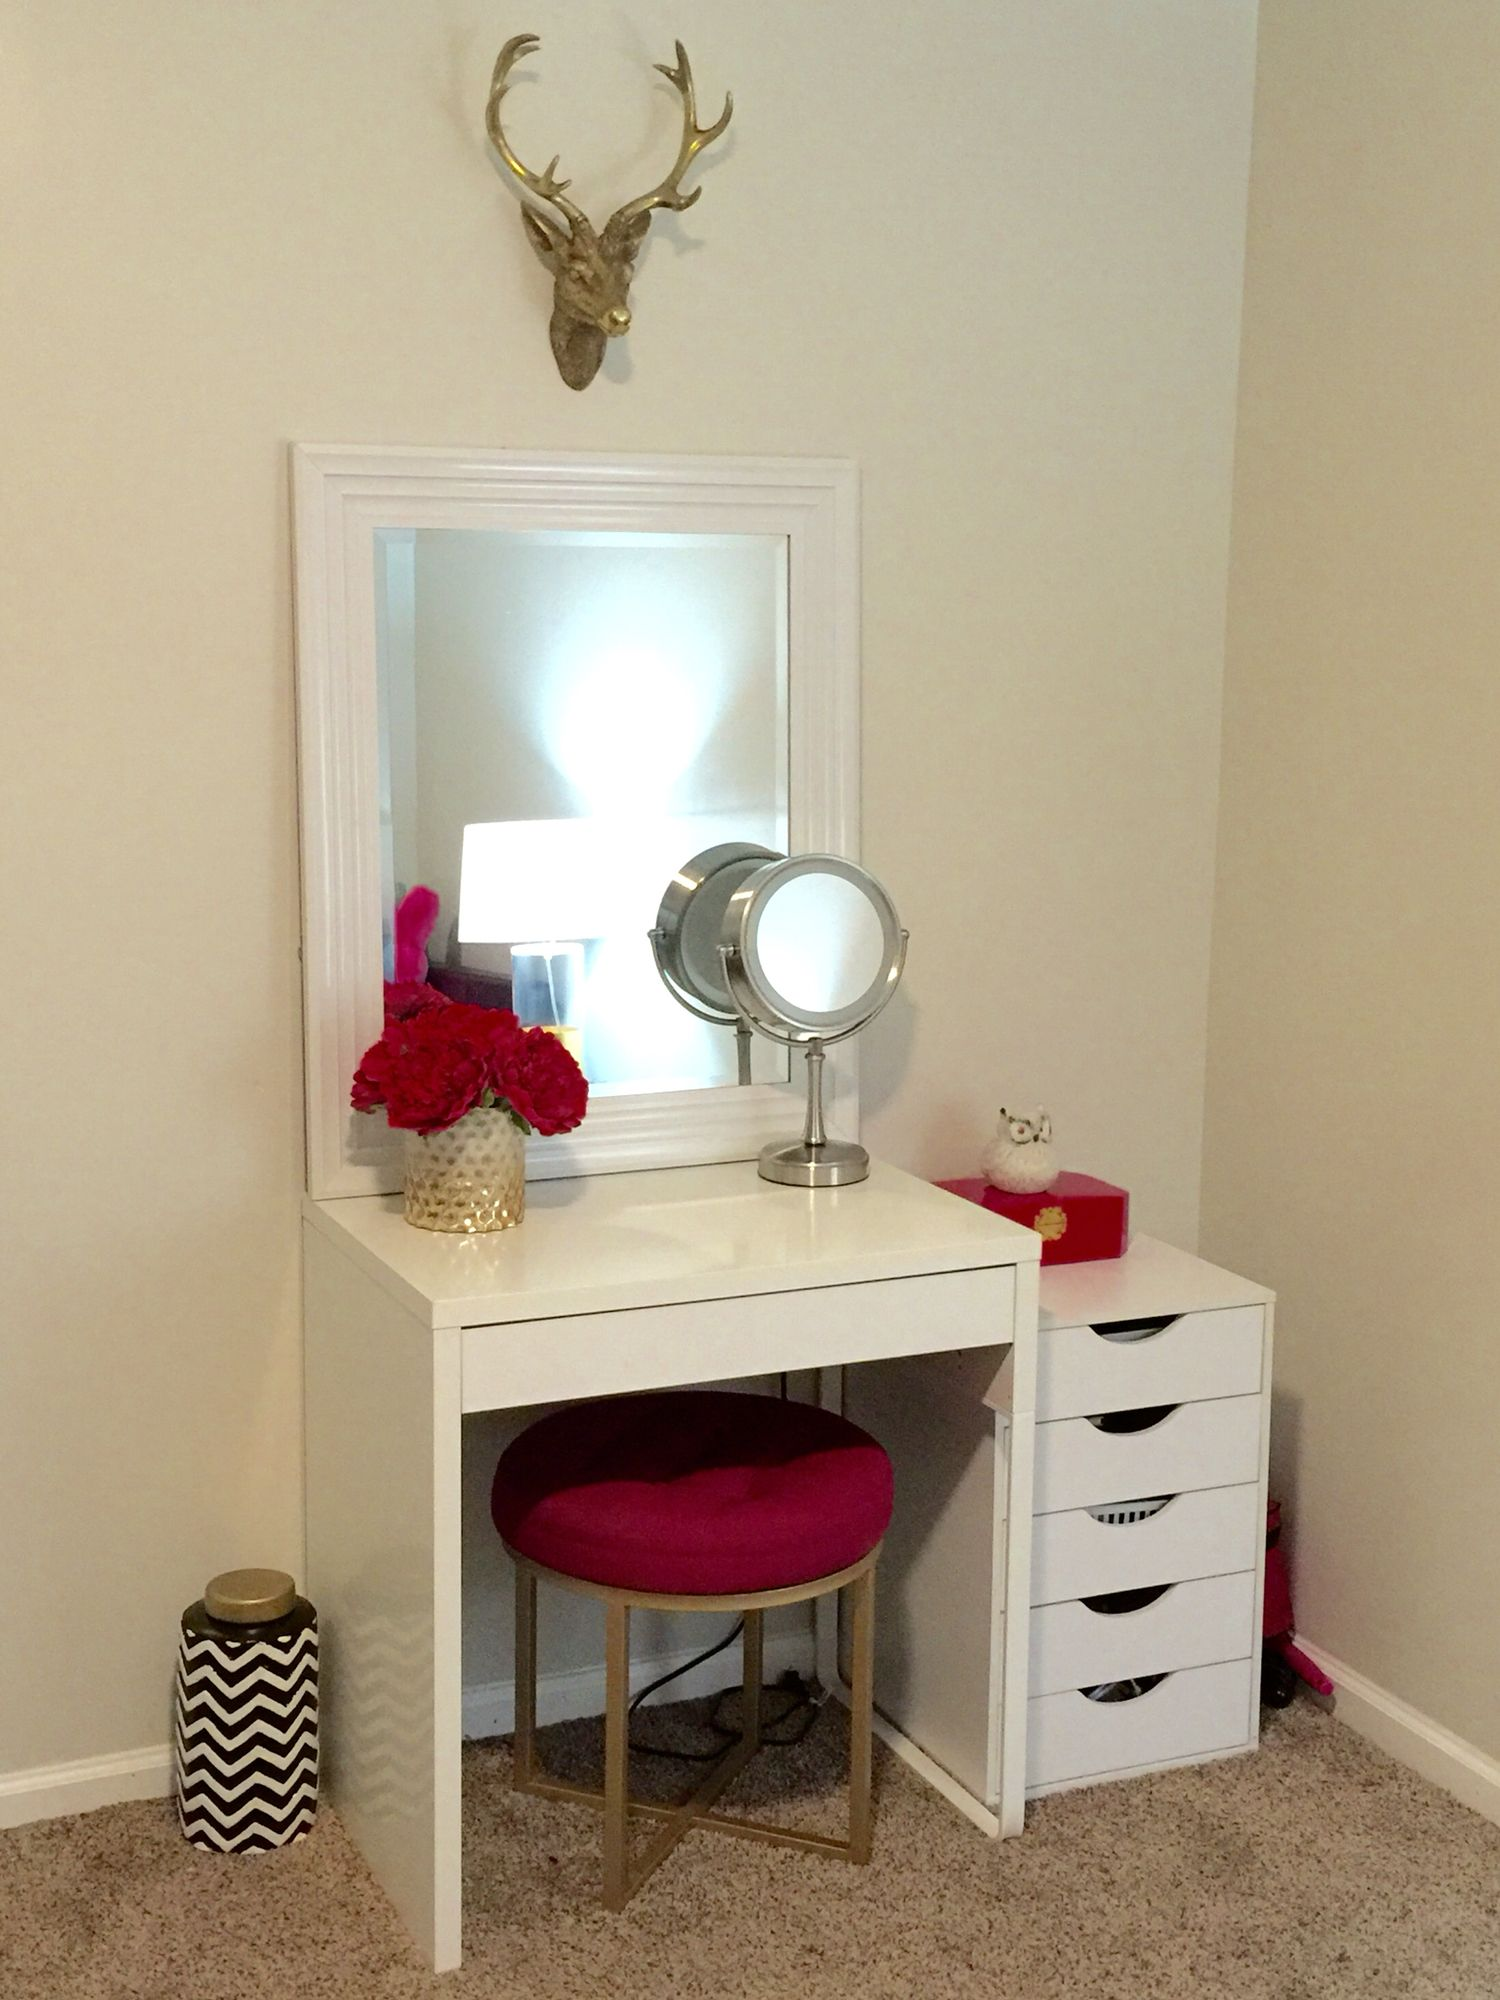 Amazing Makeup Vanity Ikea Micke Desk Target Threshold Pink Ottoman